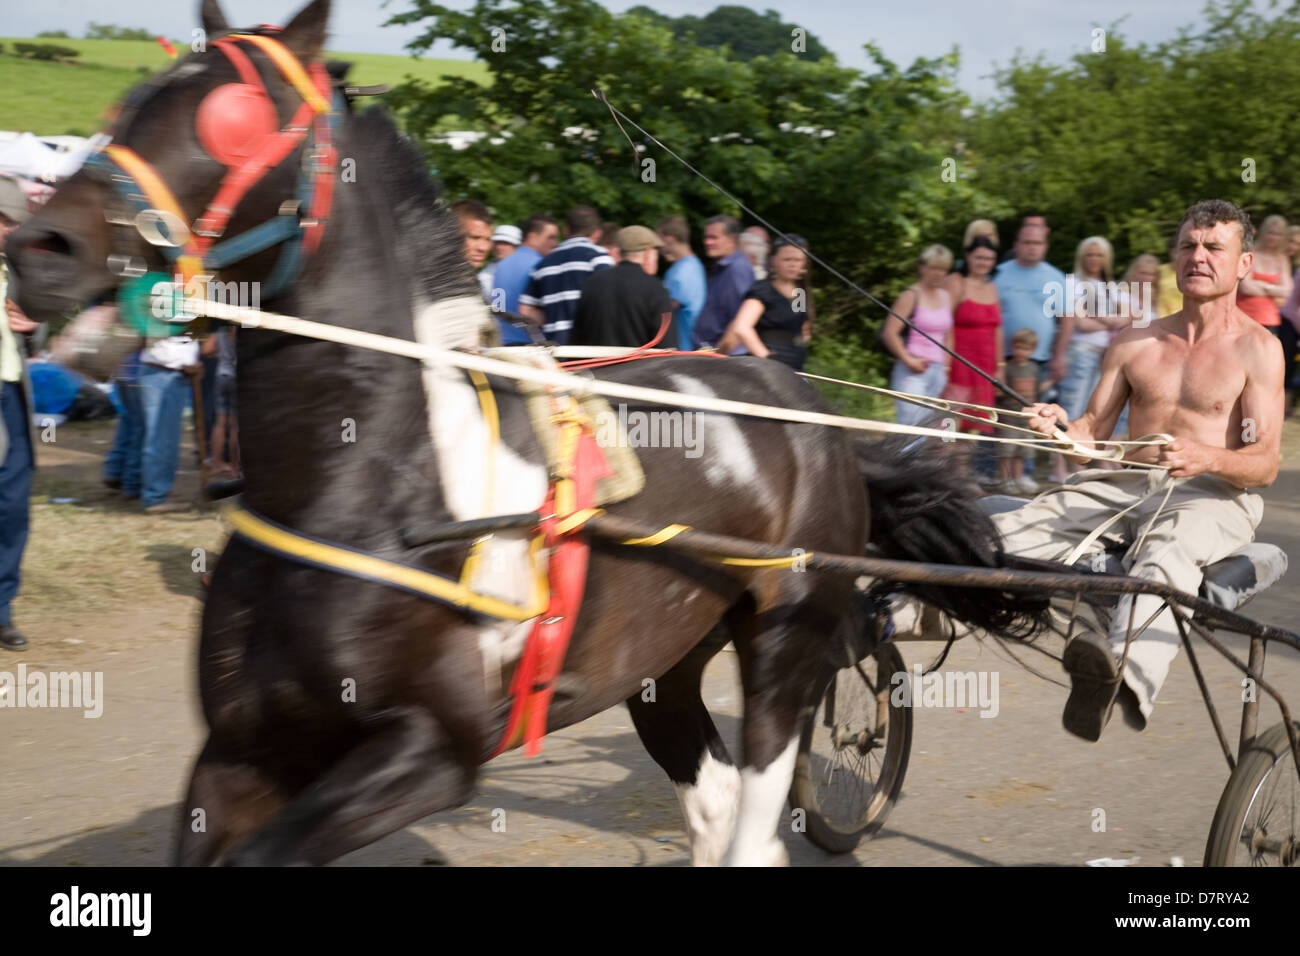 A speeding horse and sulky cart at the Appleby Fair, an annual gathering of Gypsy and Traveller communities in Cumbria. - Stock Image